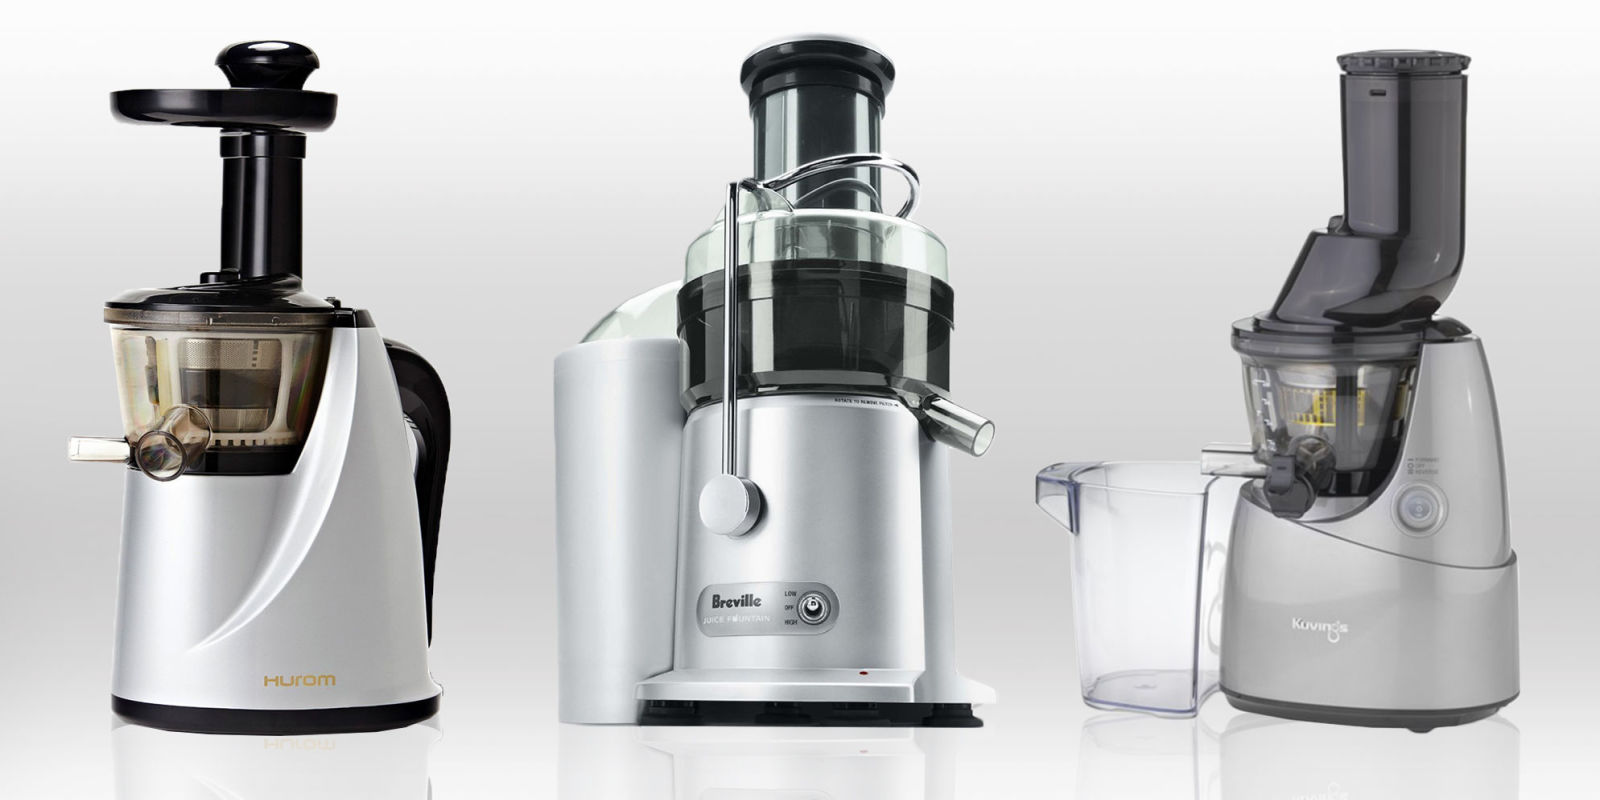 Best Slow Cold Juicer : 8 Best Cold Press Juicers in 2017 - Slow and Masticating Juicer Machines